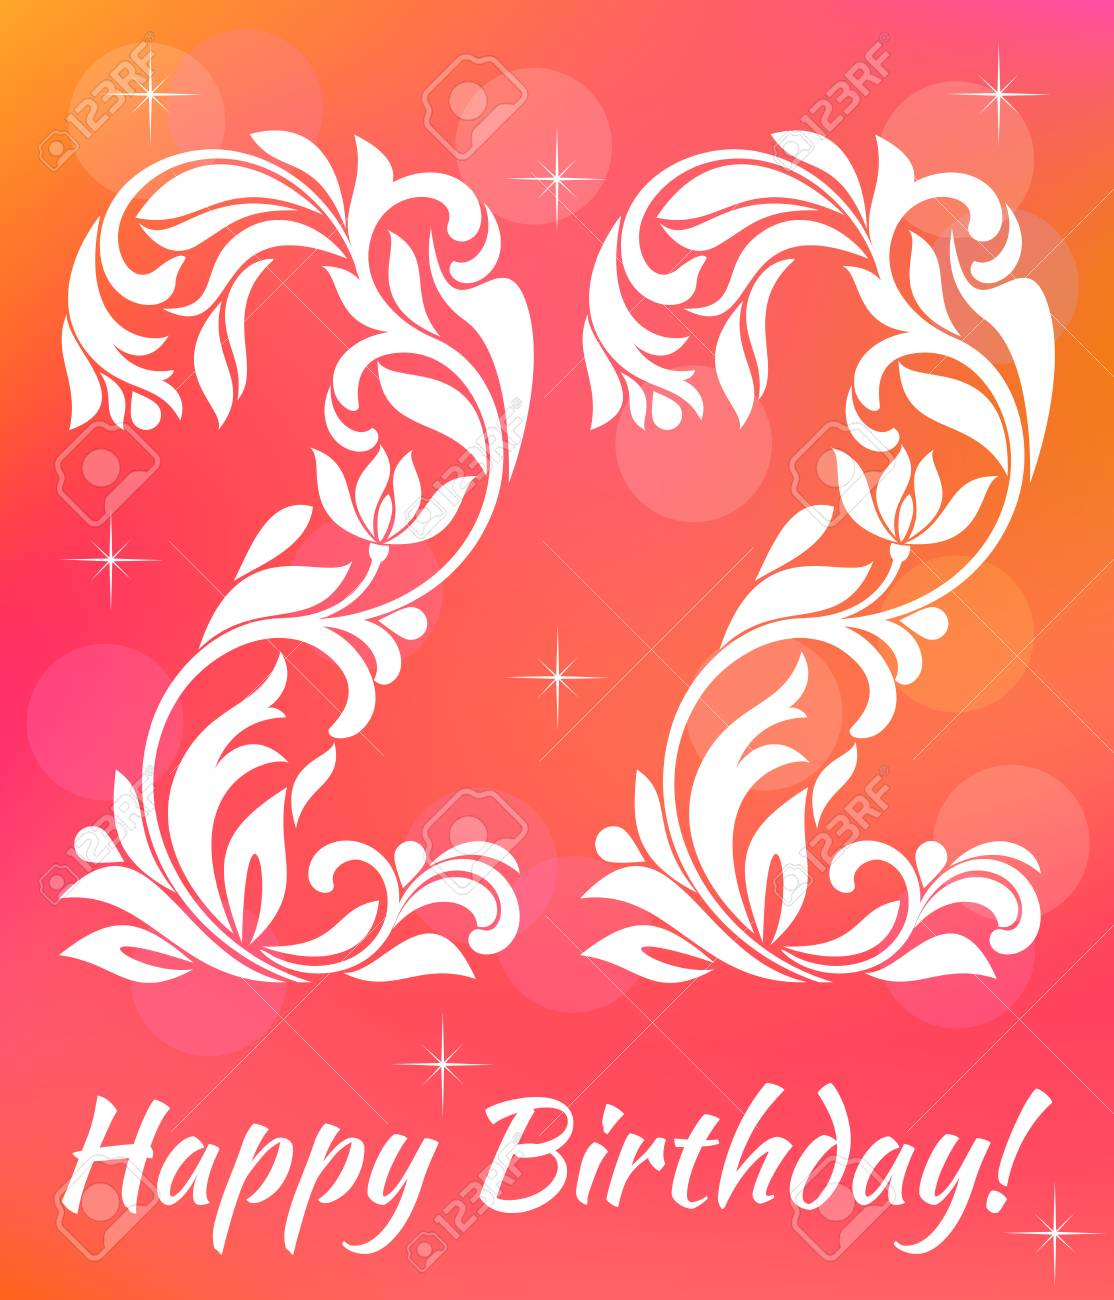 Bright Greeting Card Invitation Template Celebrating 22 Years Birthday Decorative Font With Swirls And